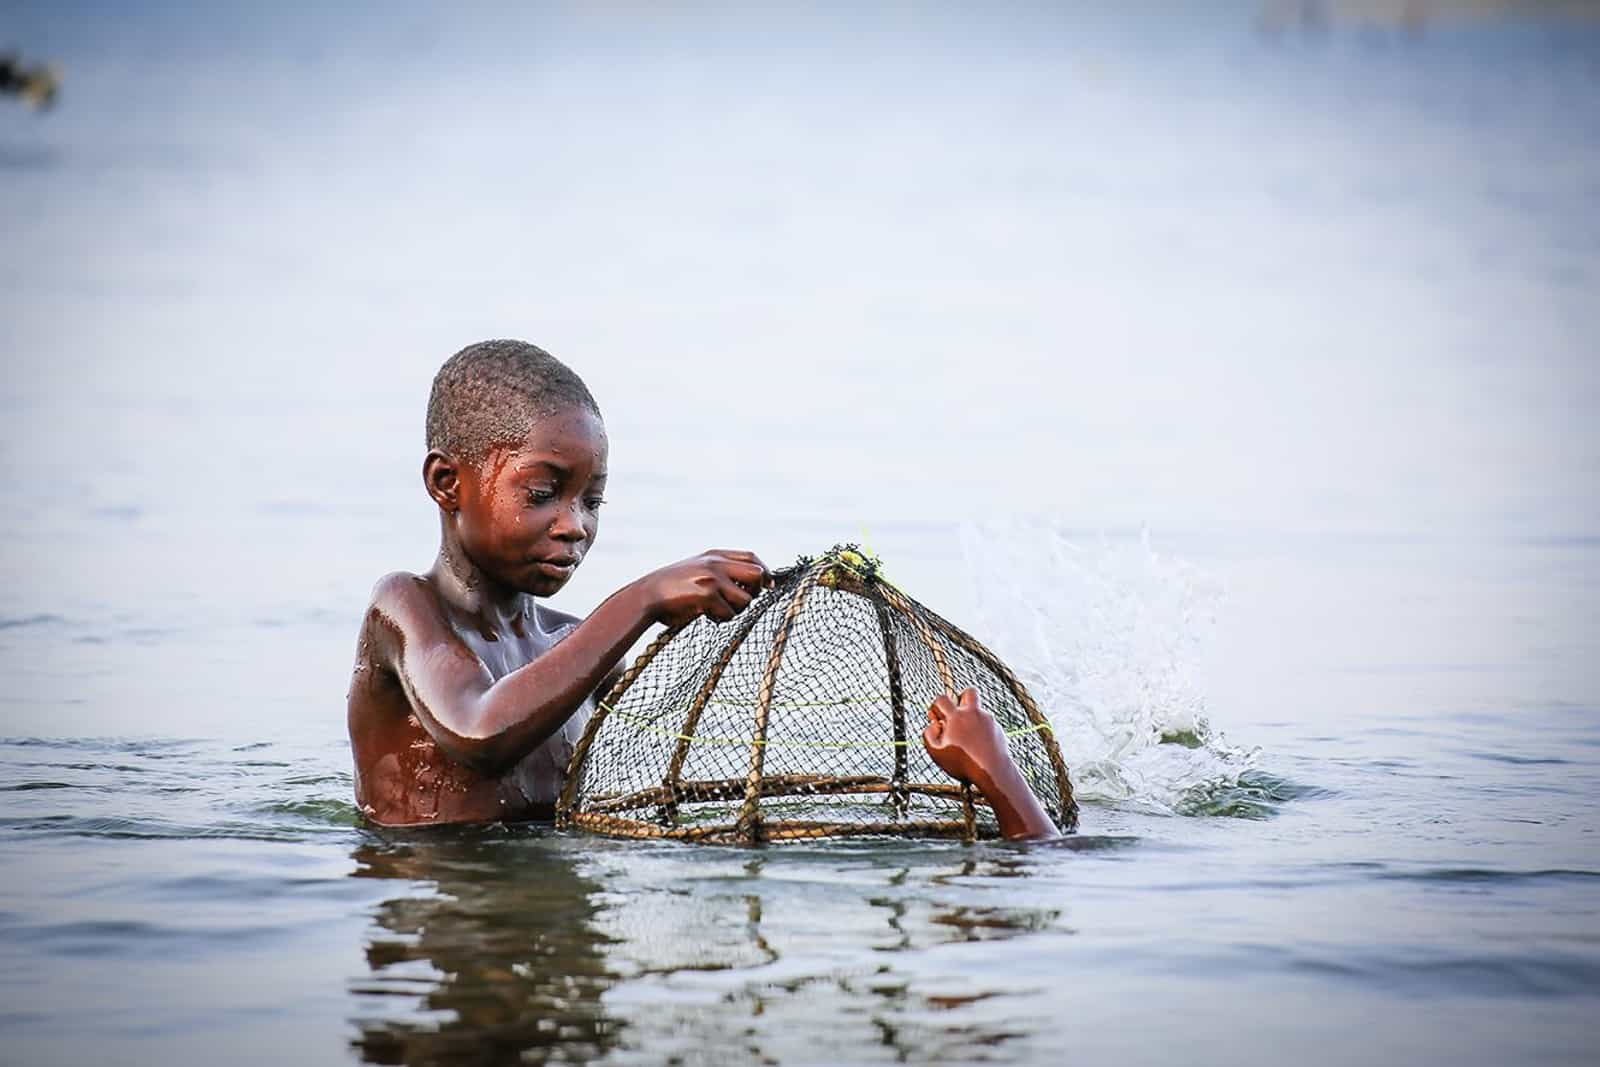 A boy holds a fishing cage into the lake water as another child dives beneath the surface